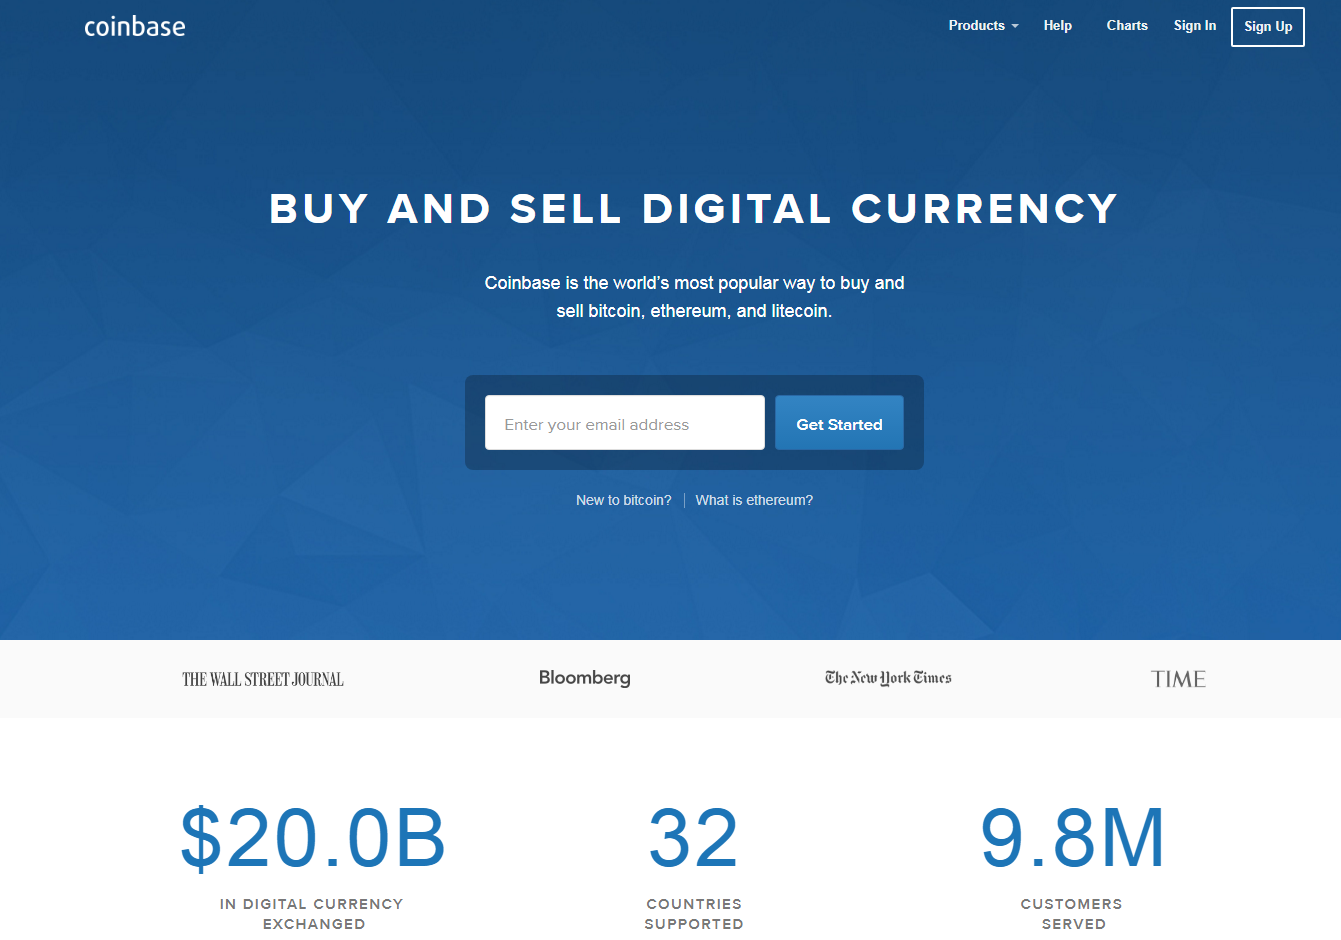 bitcoin referral programs coinbase